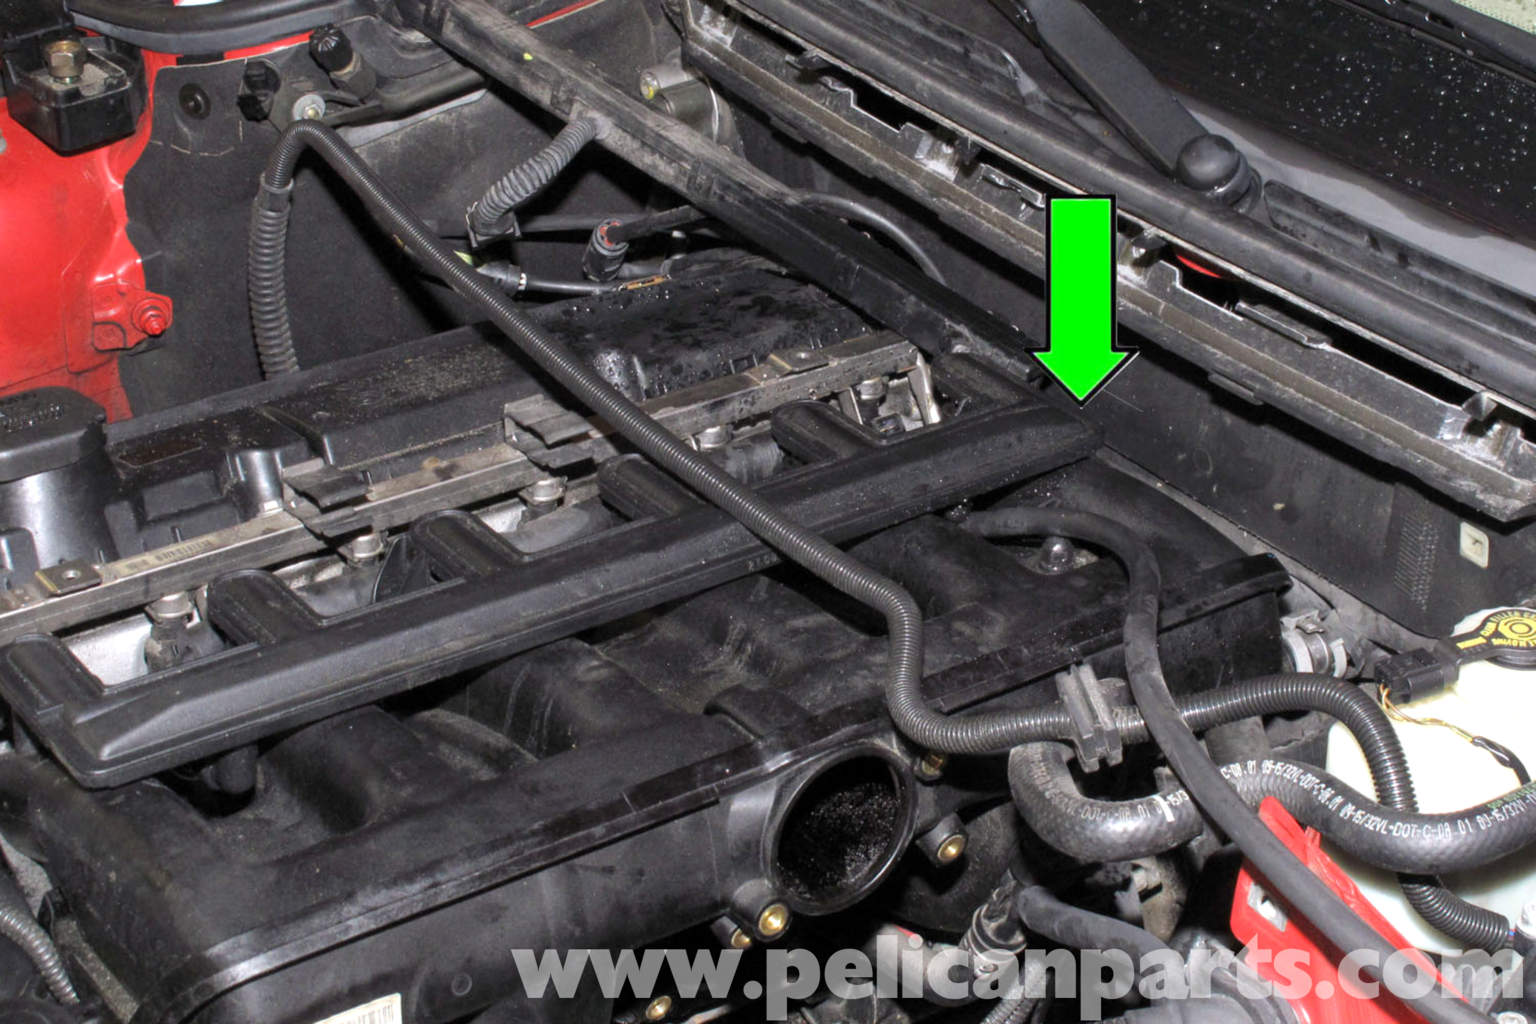 Bmw Z4 Fuse Box Diagram Starting Know About Wiring 2008 Intake Manifold 2006 Free Engine Layout